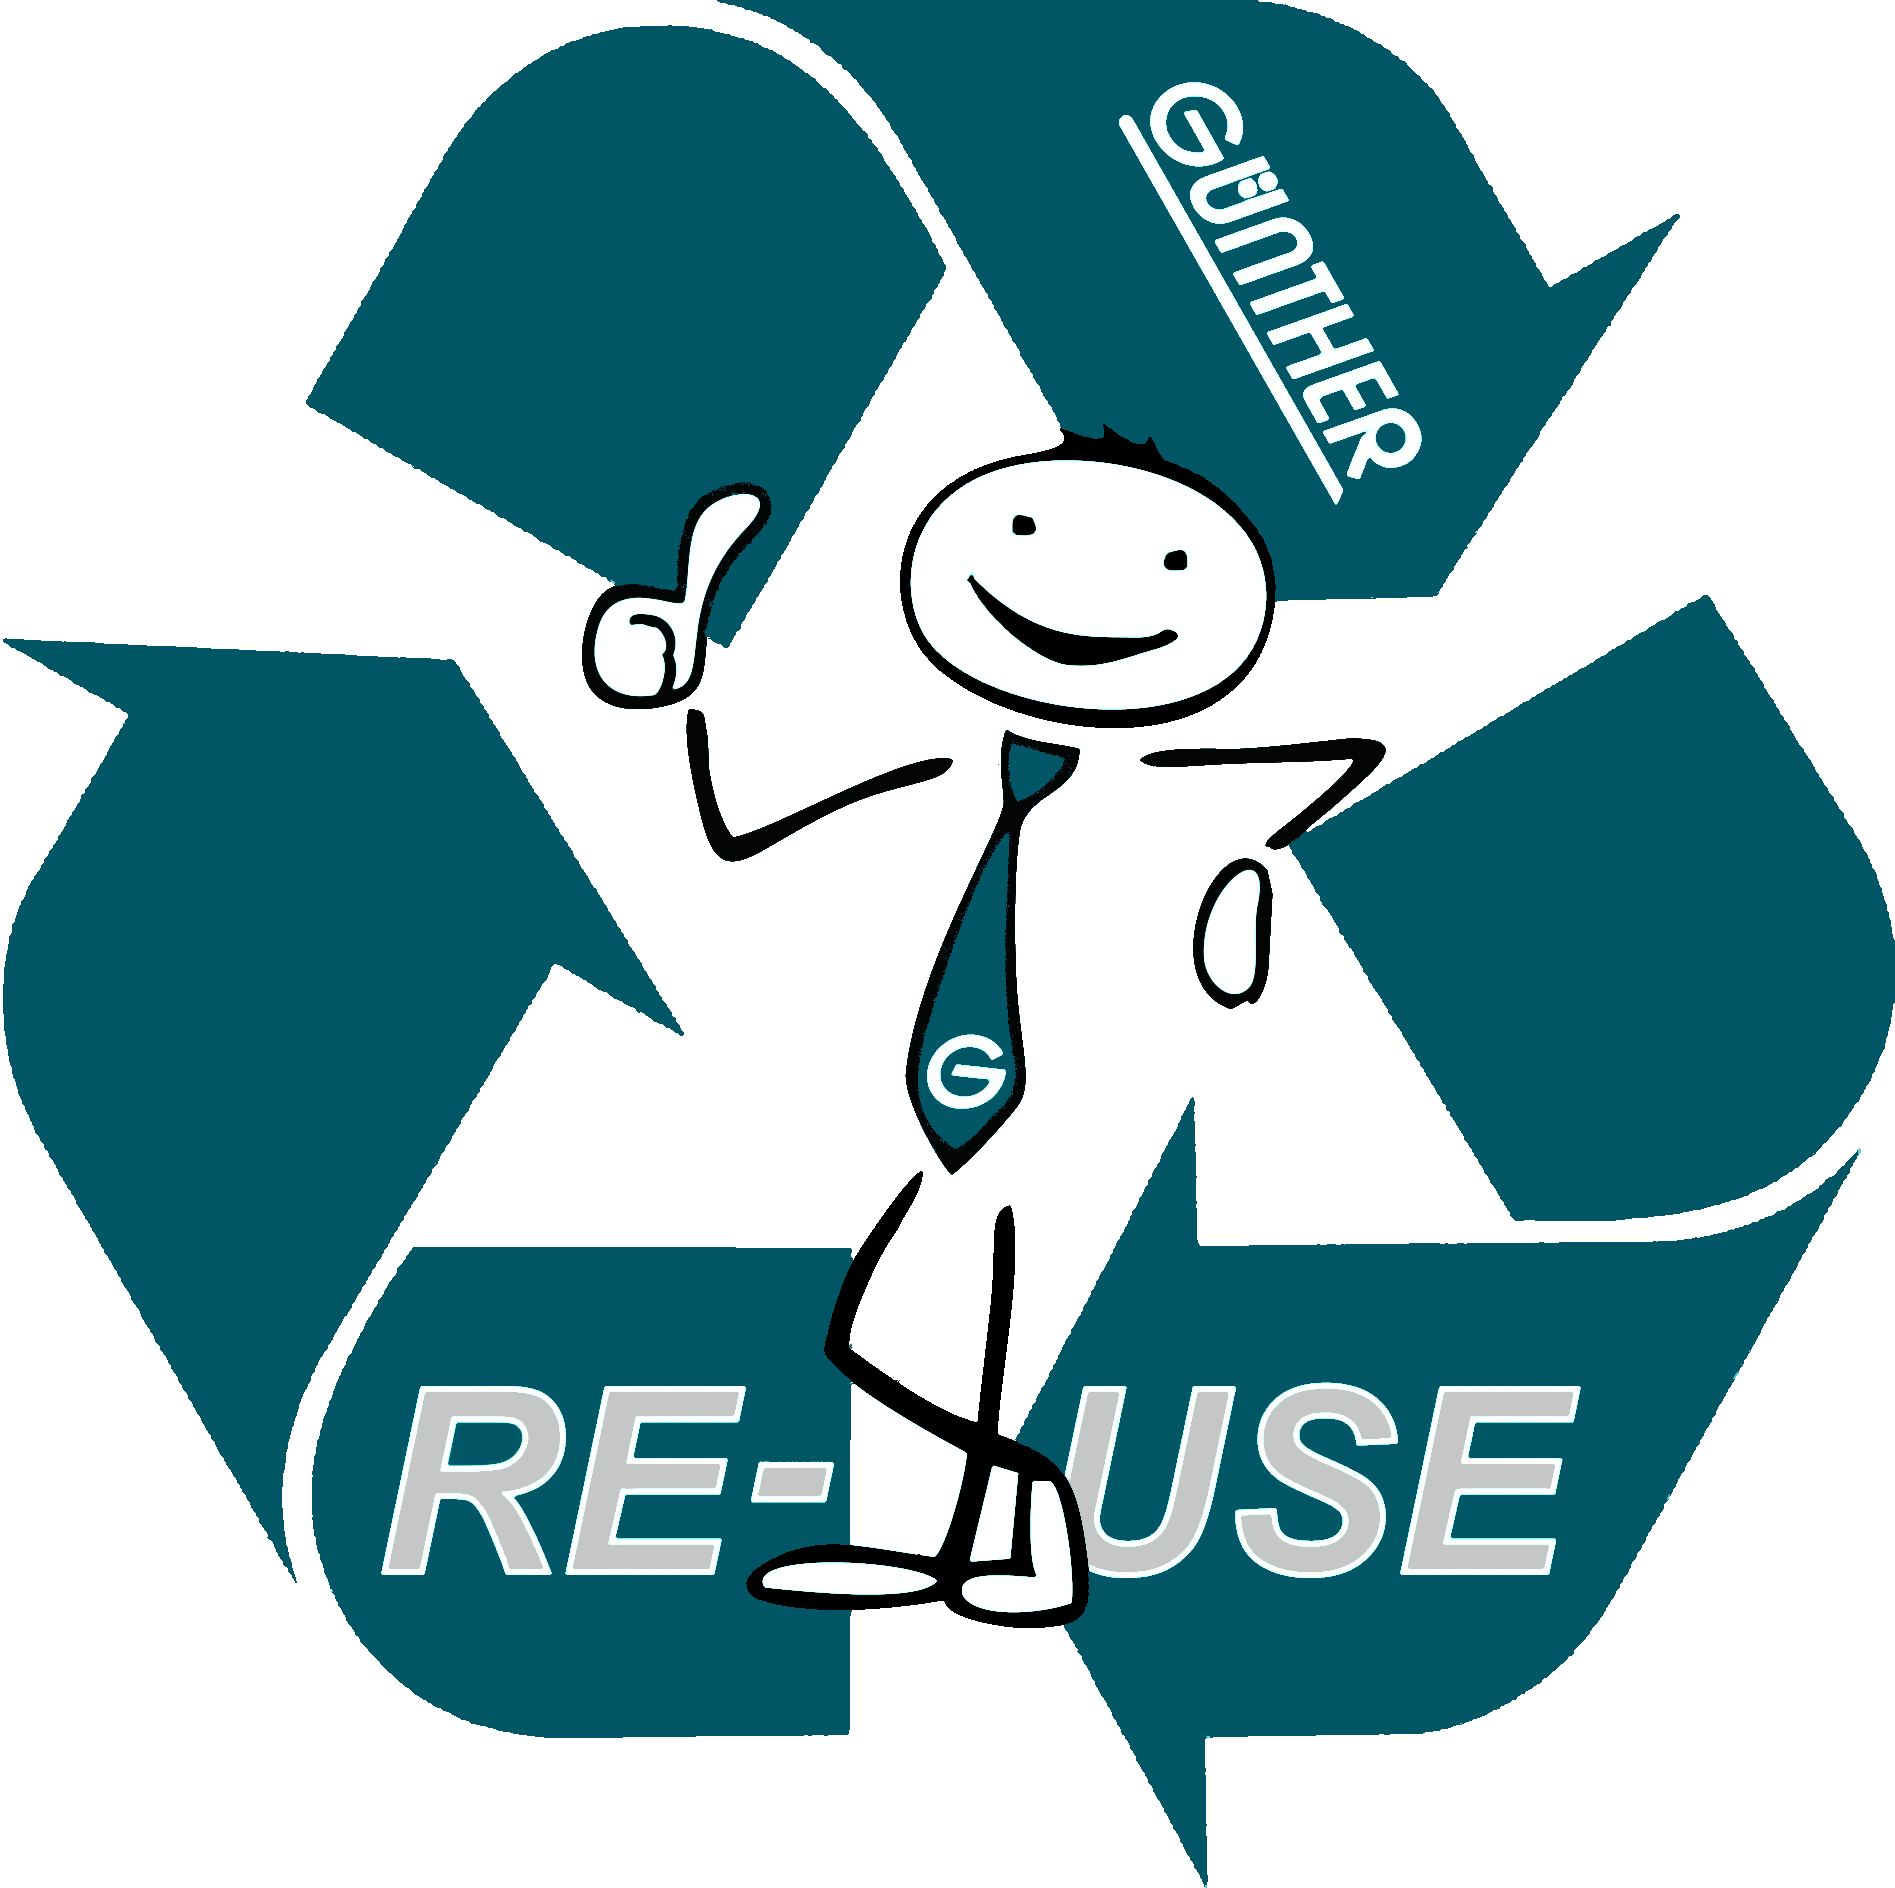 RE-USE